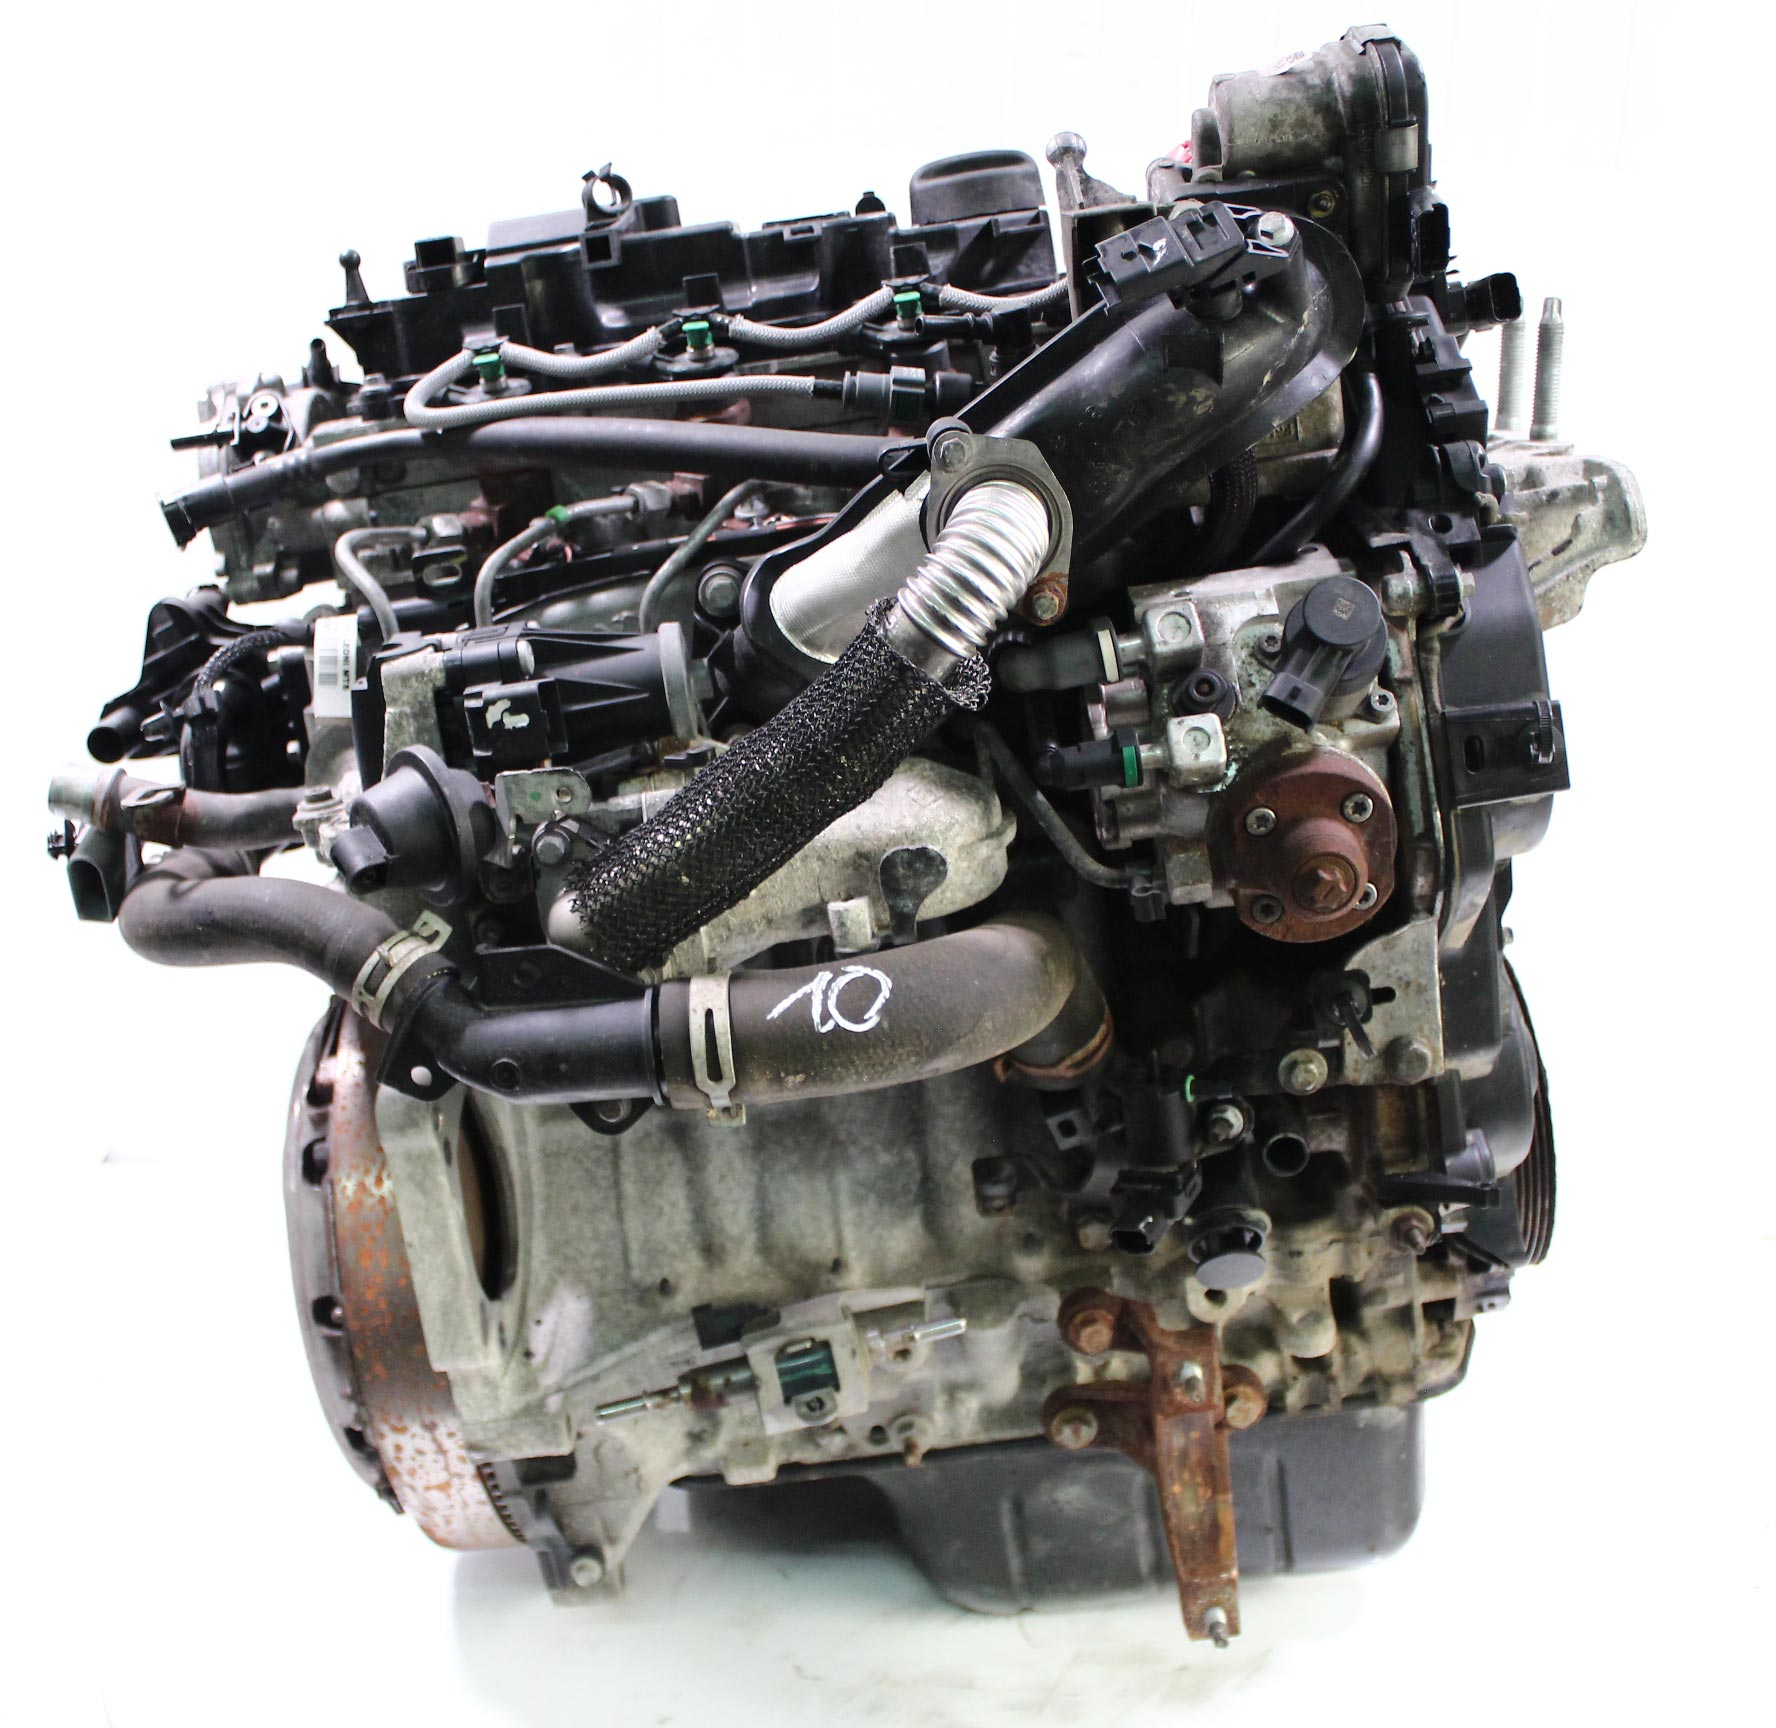 Motor 2013 Ford 1,6 TDCi Diesel NGDB 105 PS